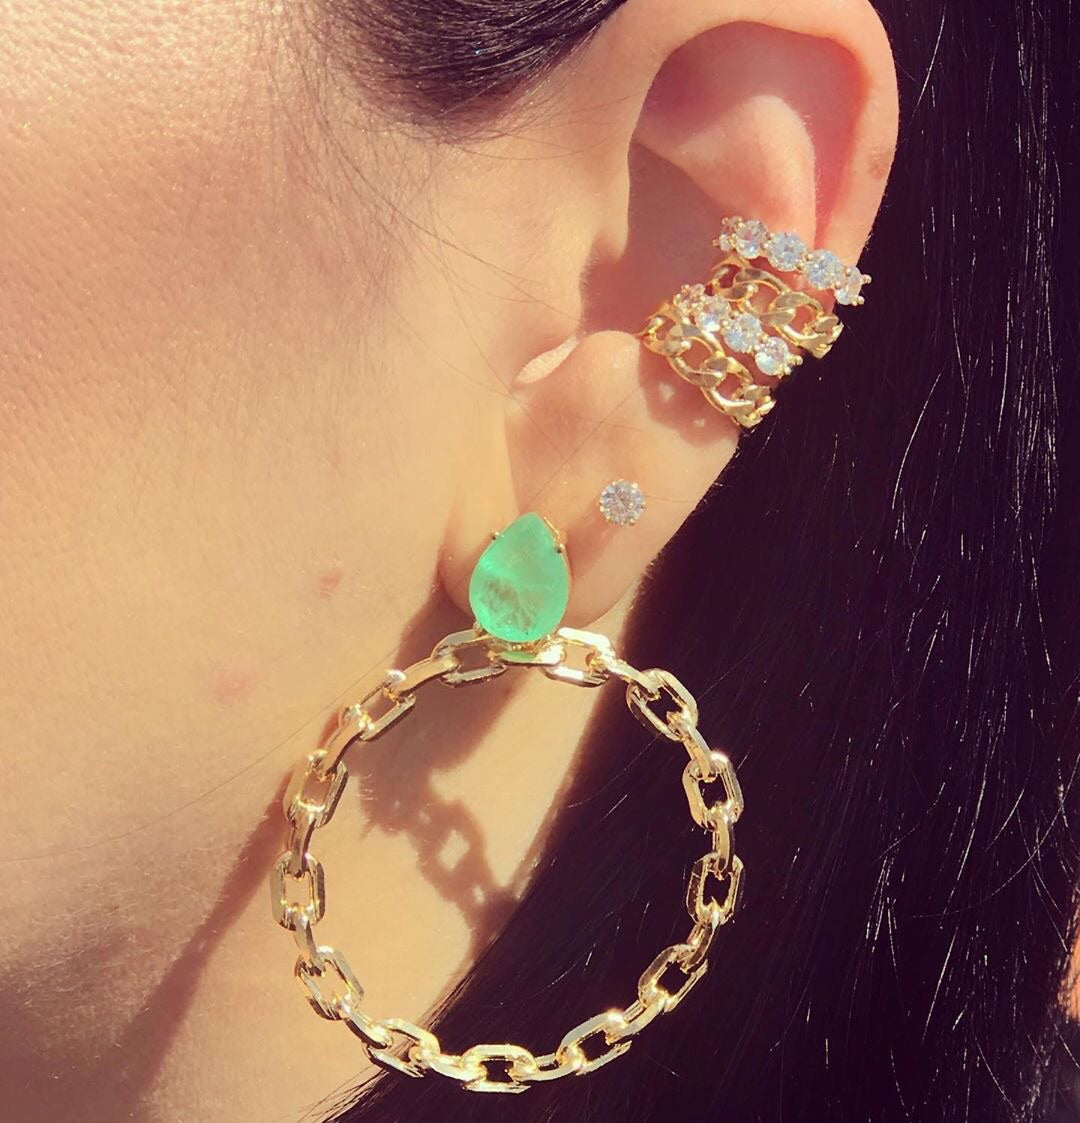 Ear Cuff 18k gold plated inspired - Mila Klein